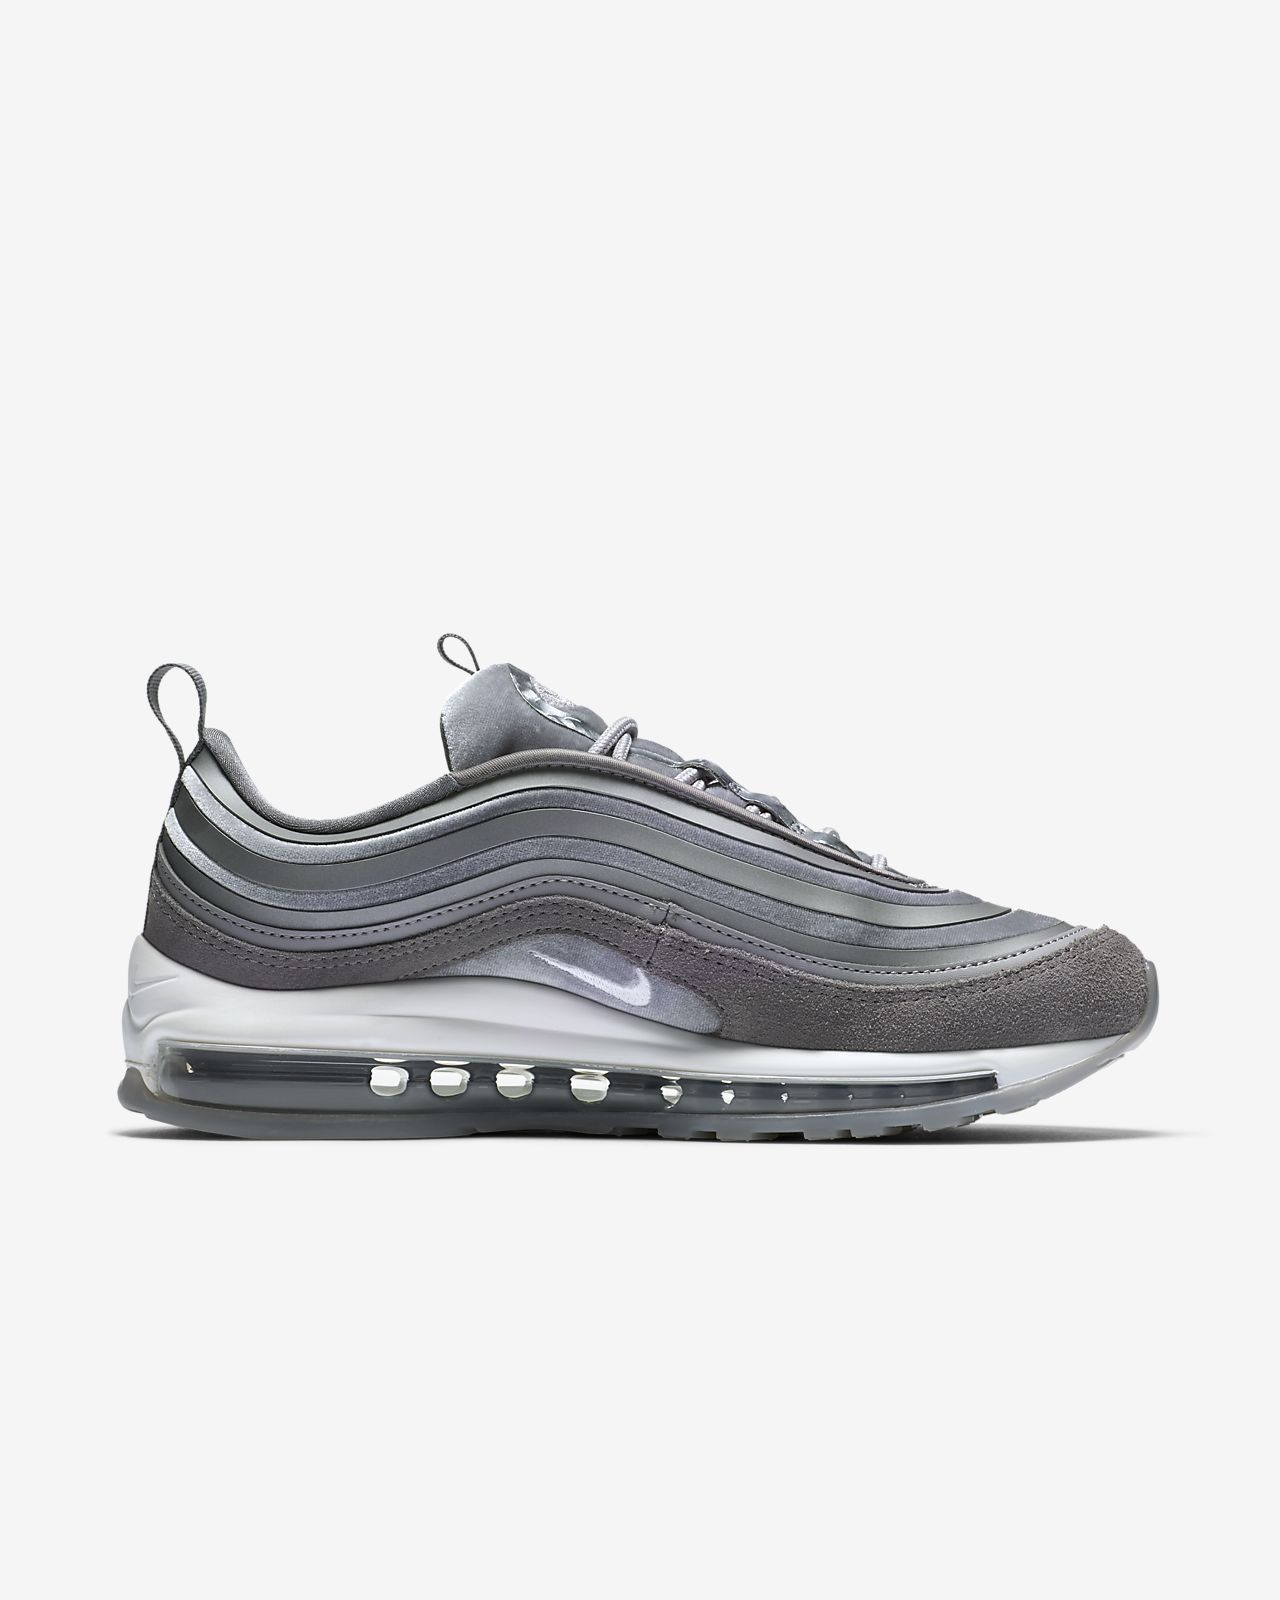 Nike Wmns Air Max 97 Nike Air Max 97 Womens Rose Gold | OPDS ...